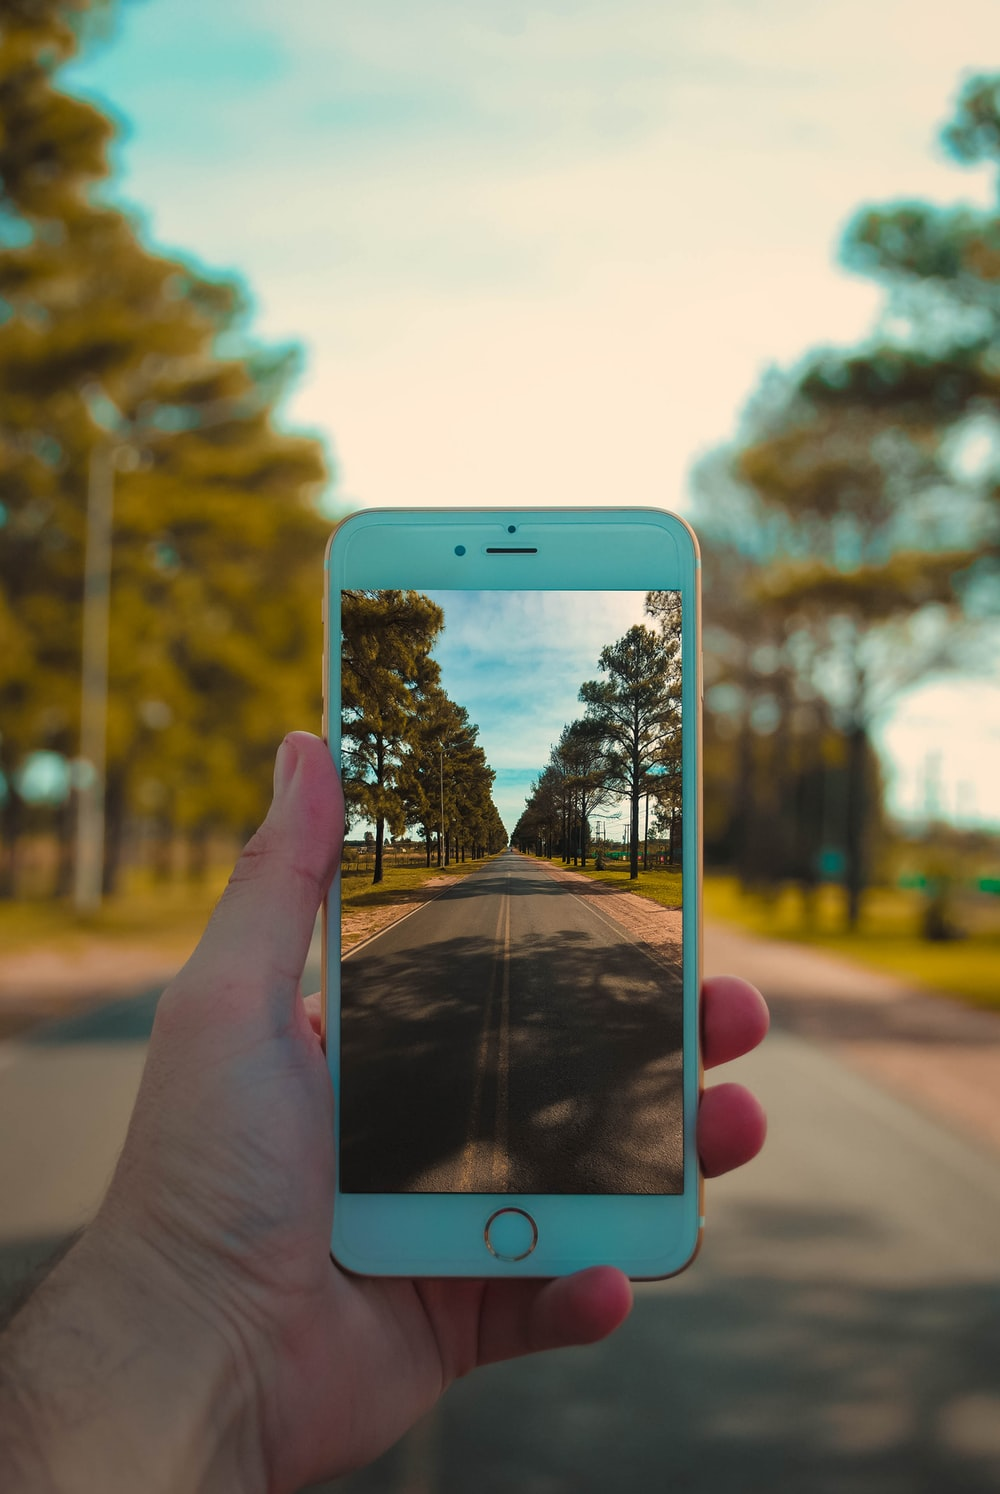 person taking photo of road using iPhone